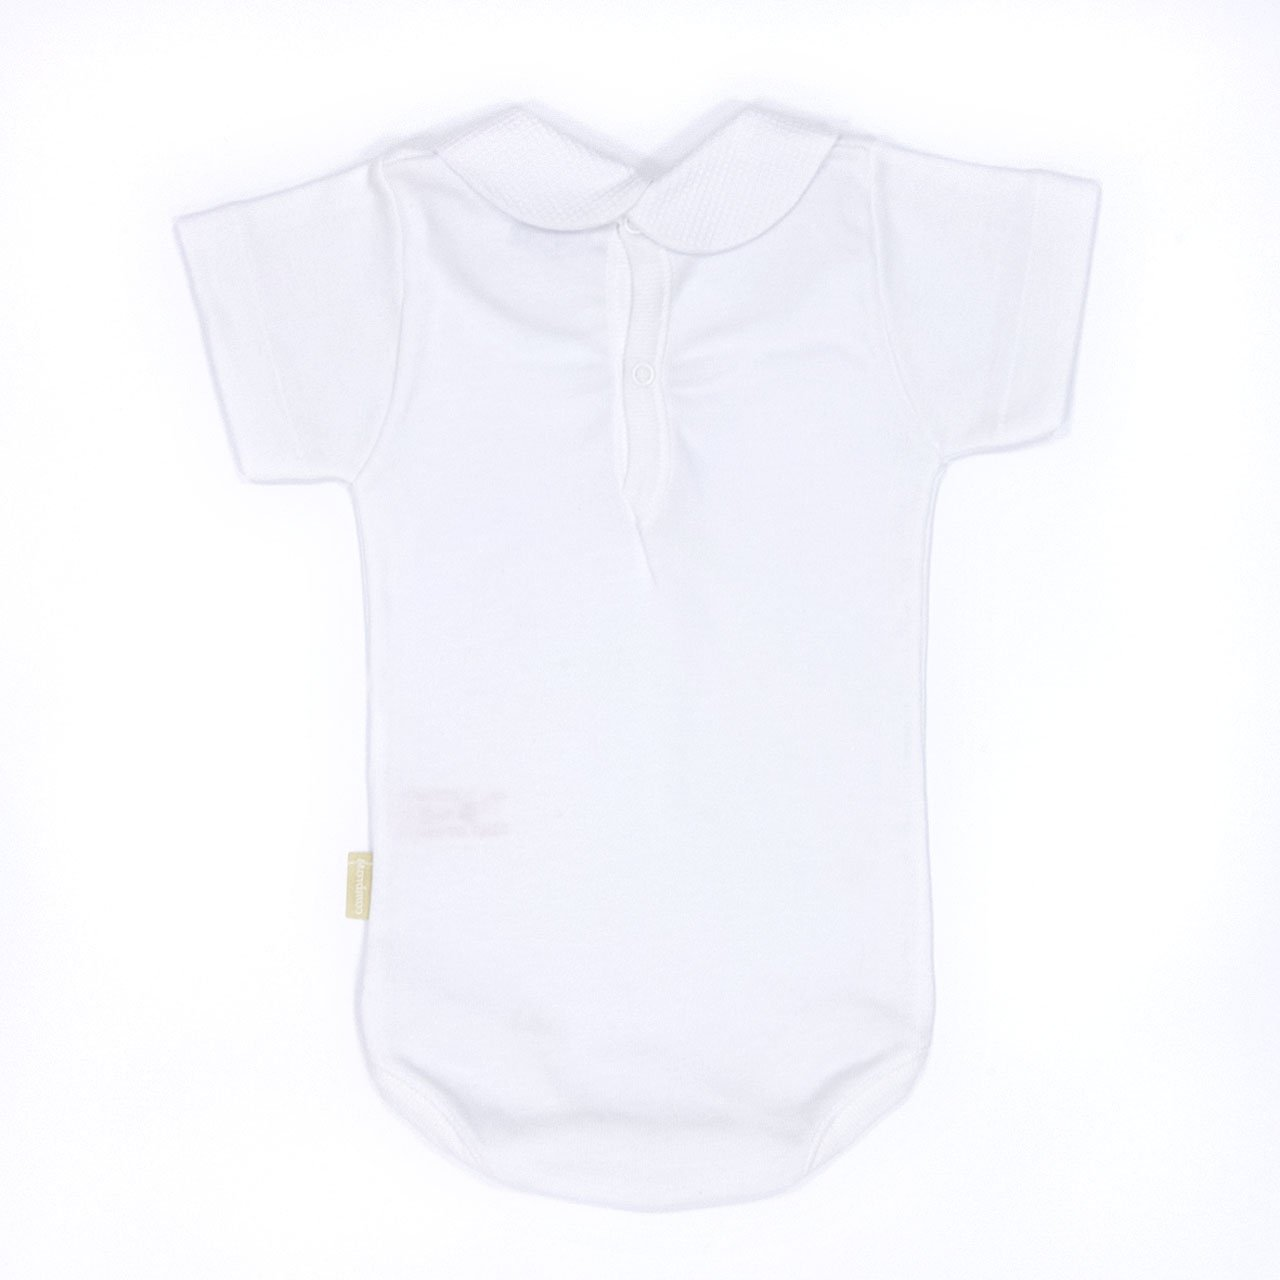 Cambrass Unisex Baby Short Sleeve Bodysuit with Collar